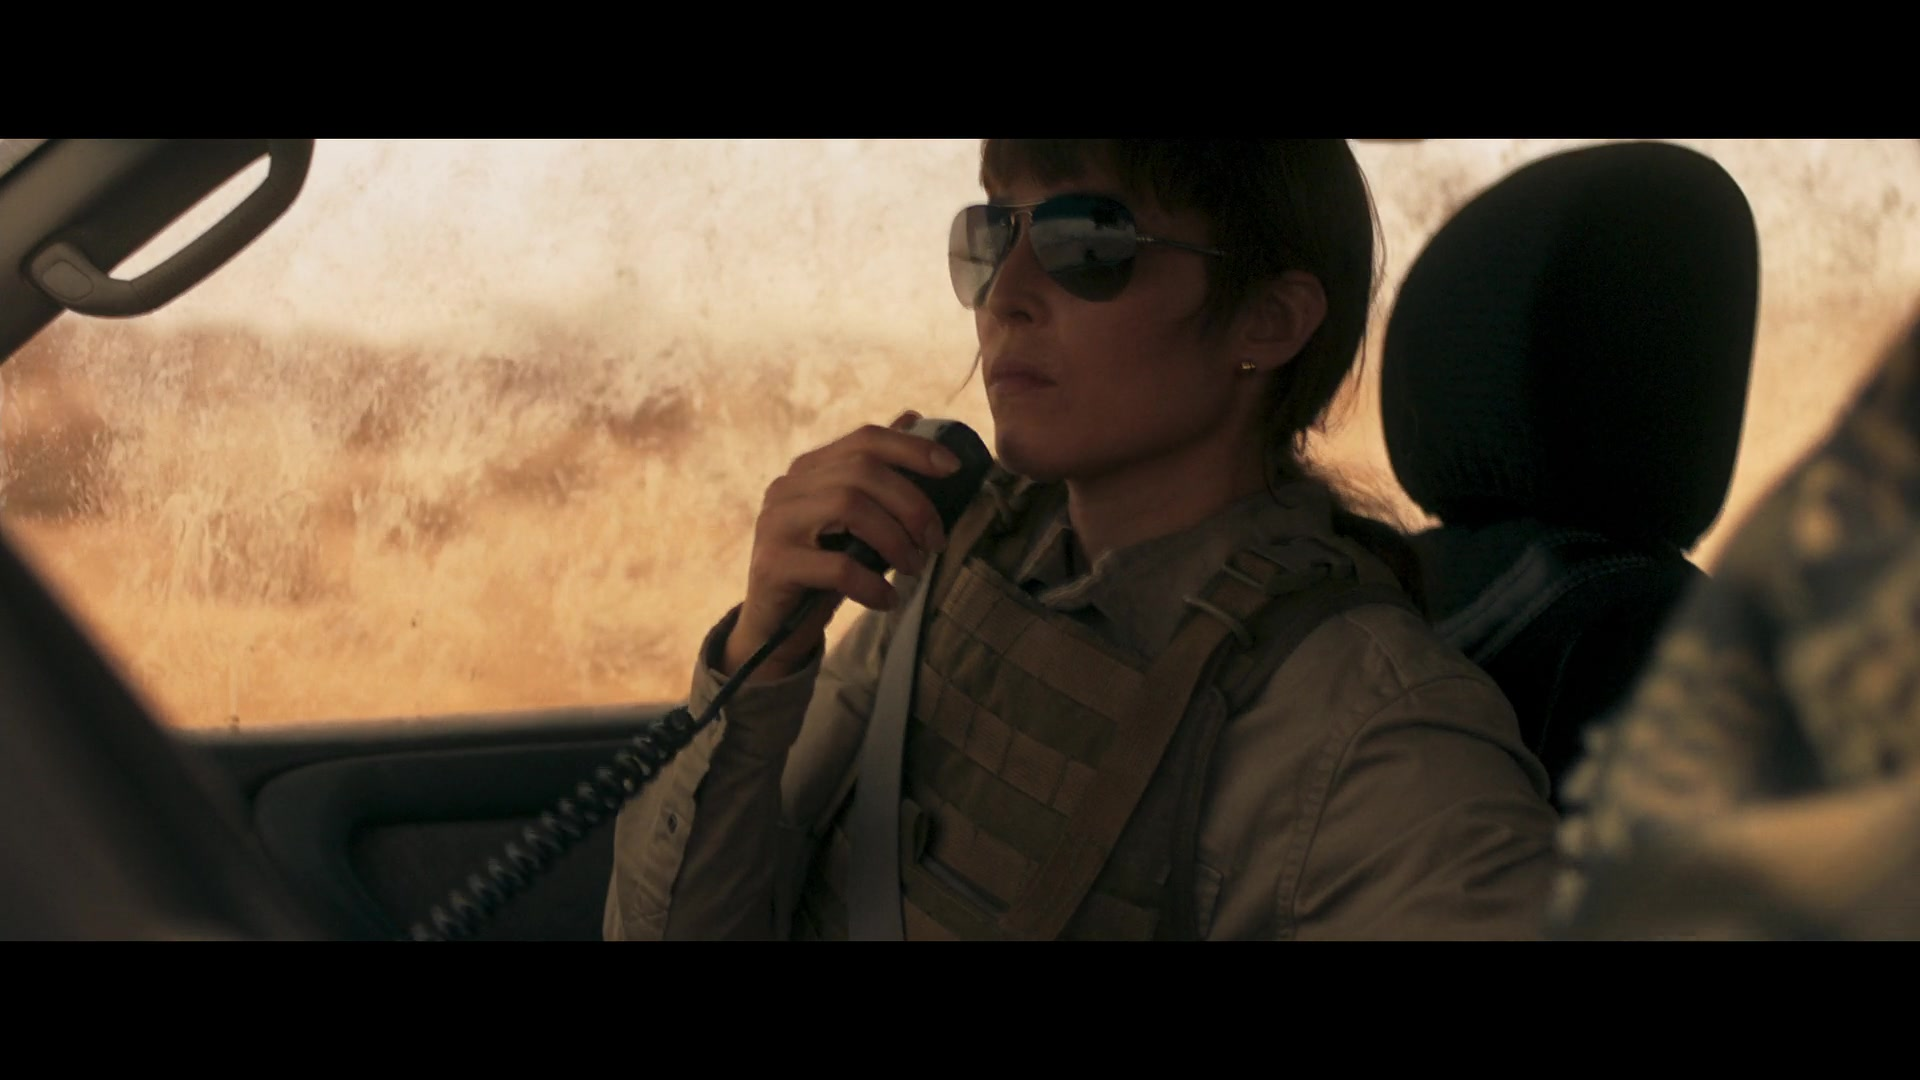 Ray Ban Women S Sunglasses Worn By Noomi Rapace In Close